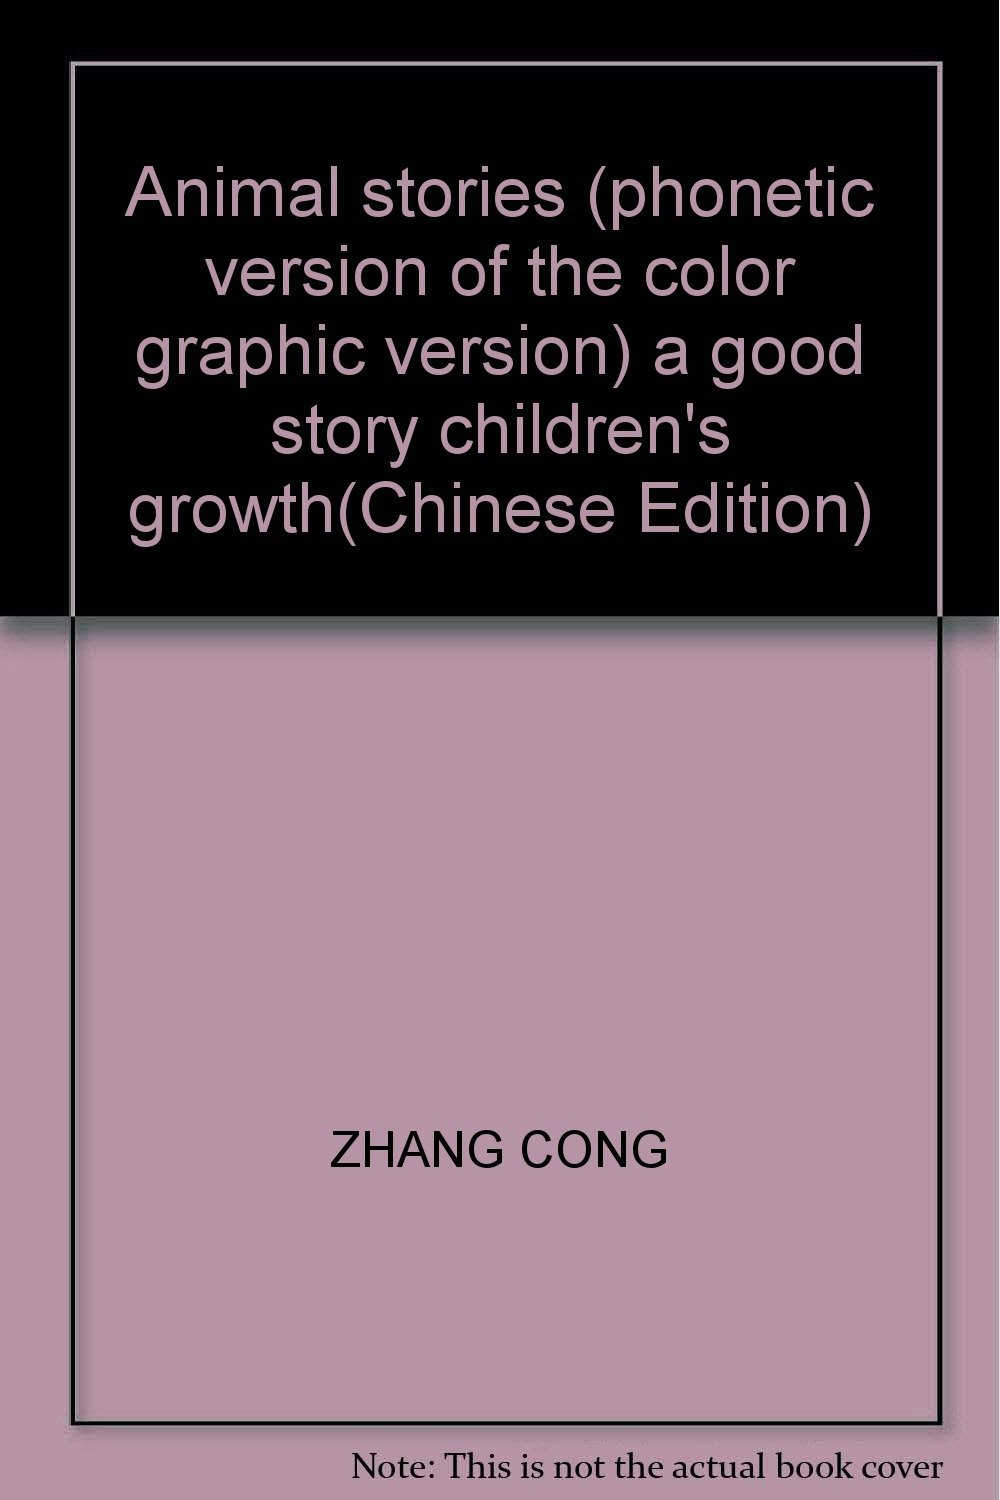 Animal stories (phonetic version of the color graphic version) a good story children's growth(Chinese Edition) pdf